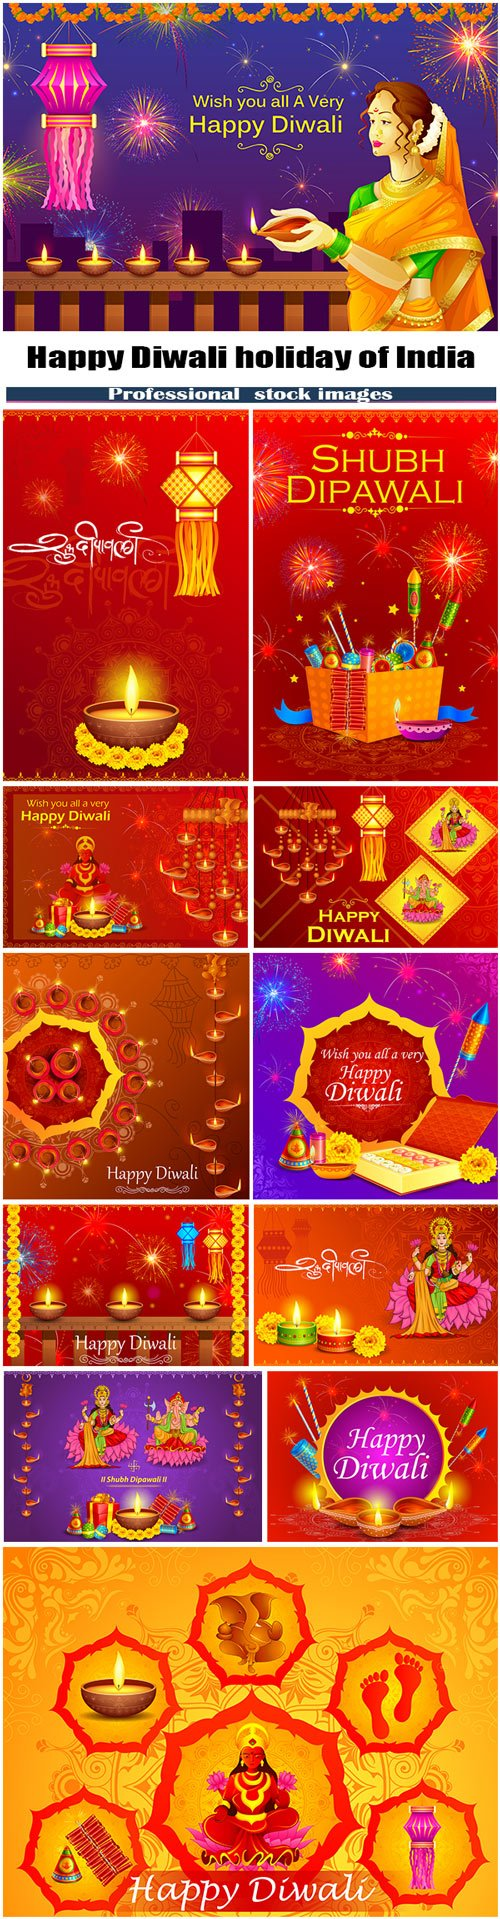 Happy Diwali holiday of India